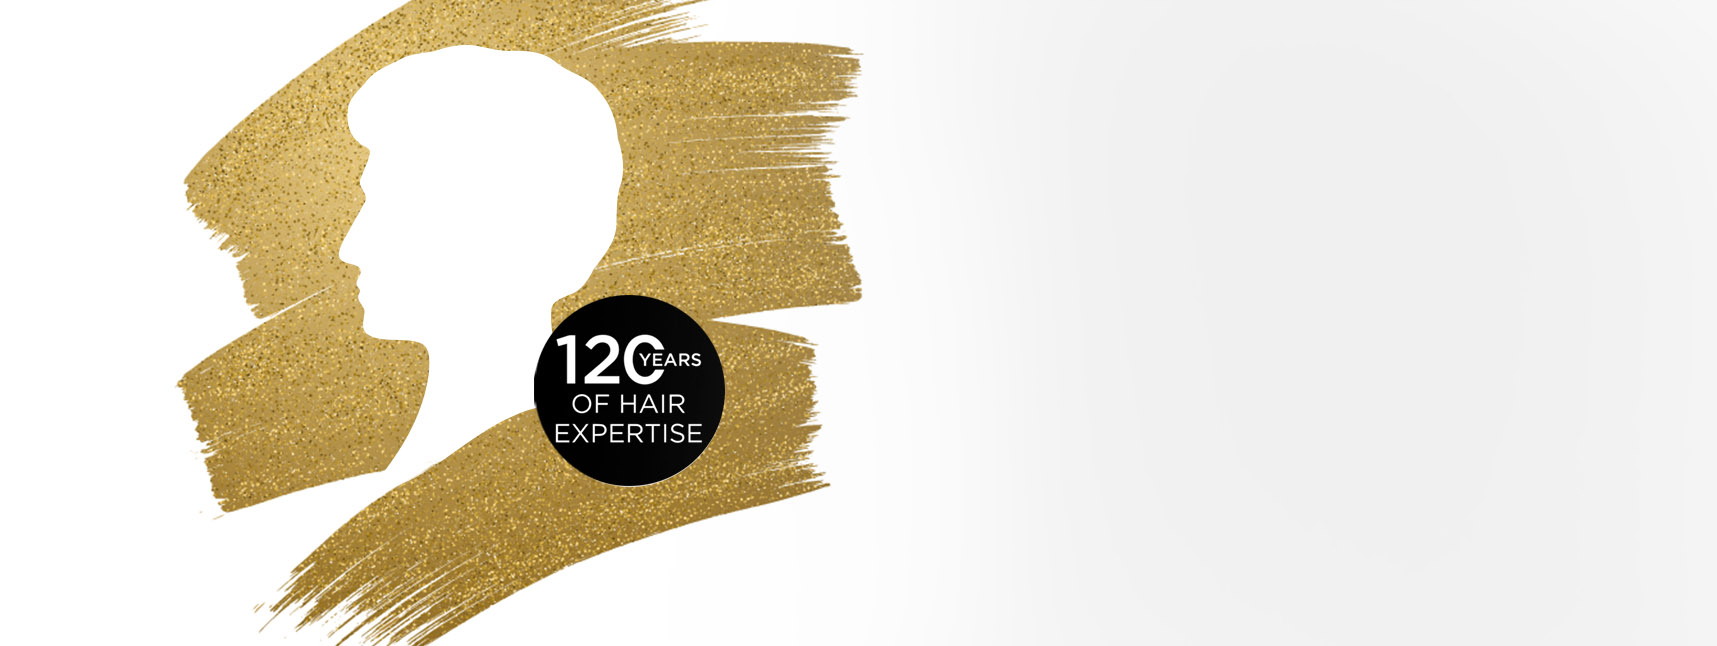 120th anniversary of Schwarzkopf